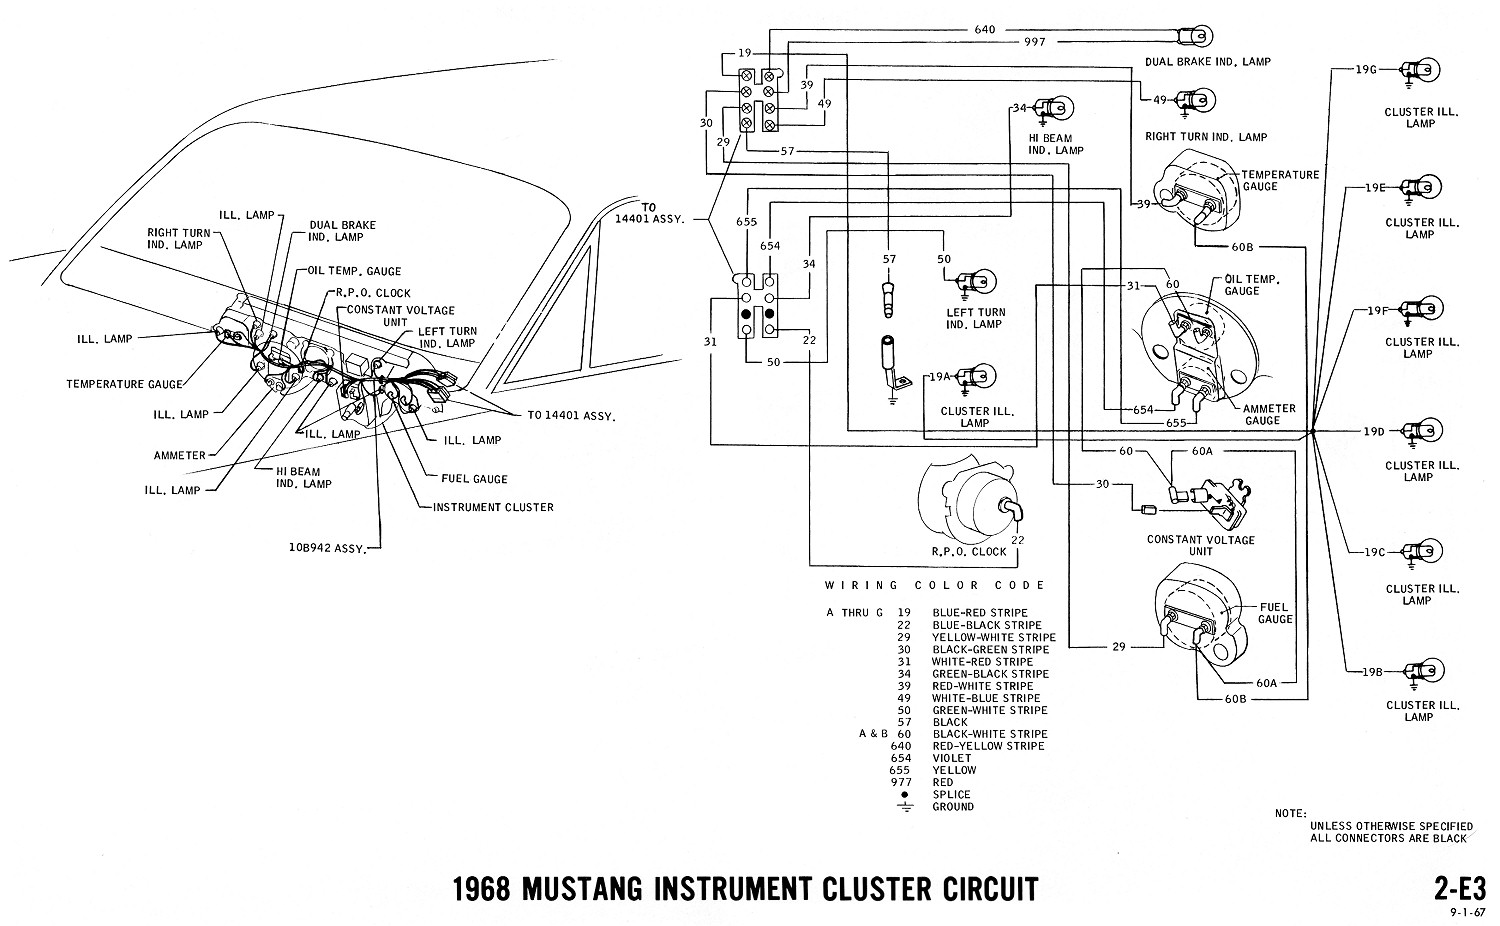 1968 mustang dash wiring diagram wiring diagram blog data 2003 Yukon Dash Schematic 1968 mustang wiring diagrams evolving software 94 mustang dash wiring diagram 1968 mustang dash wiring diagram